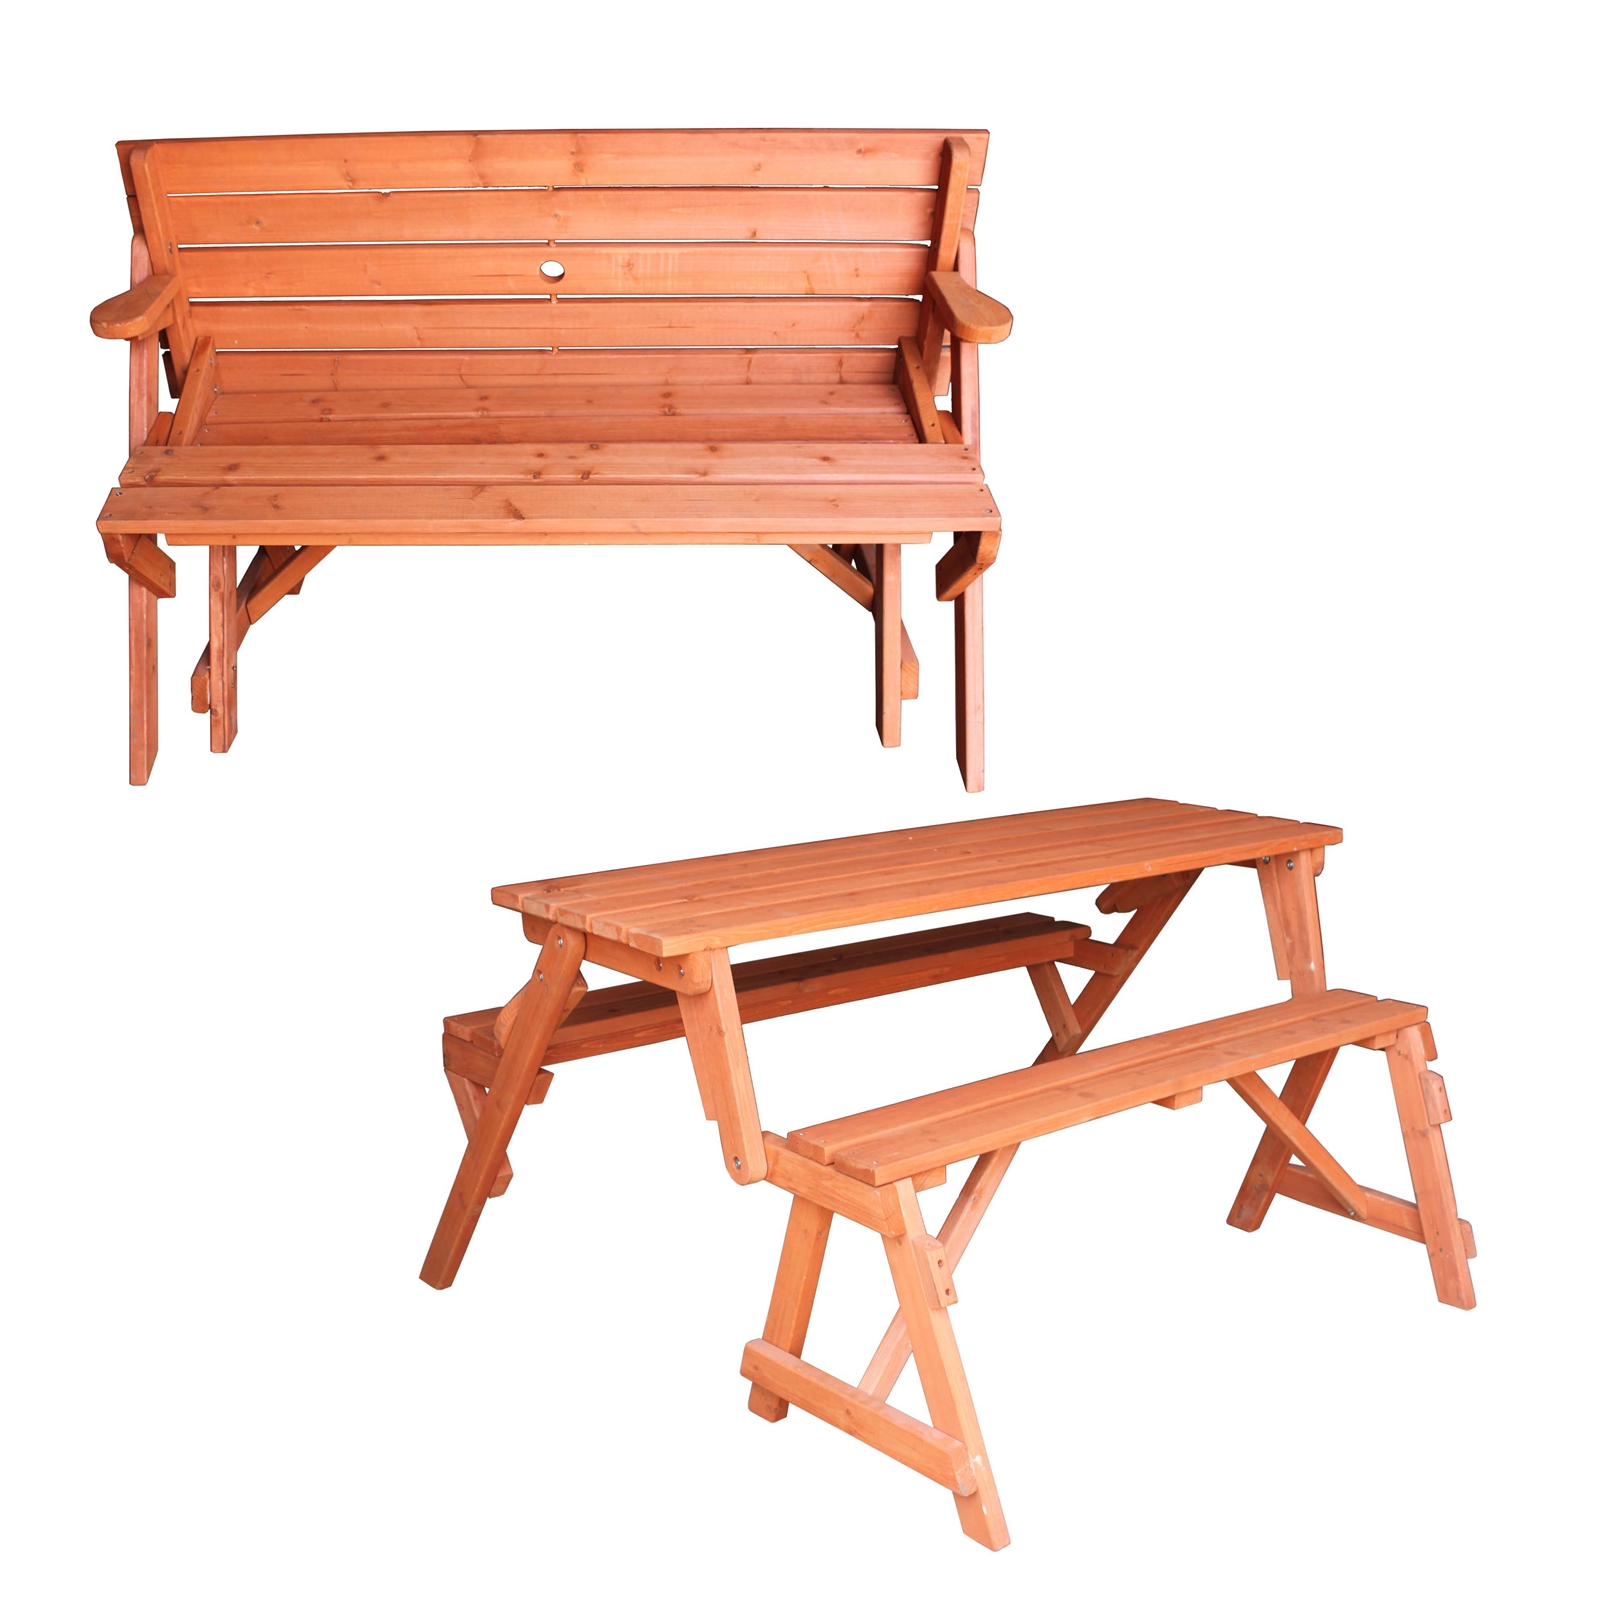 foxhunter garden wooden folding picnic seat table bench 2 in 1 outdoor fhtb01 ebay. Black Bedroom Furniture Sets. Home Design Ideas